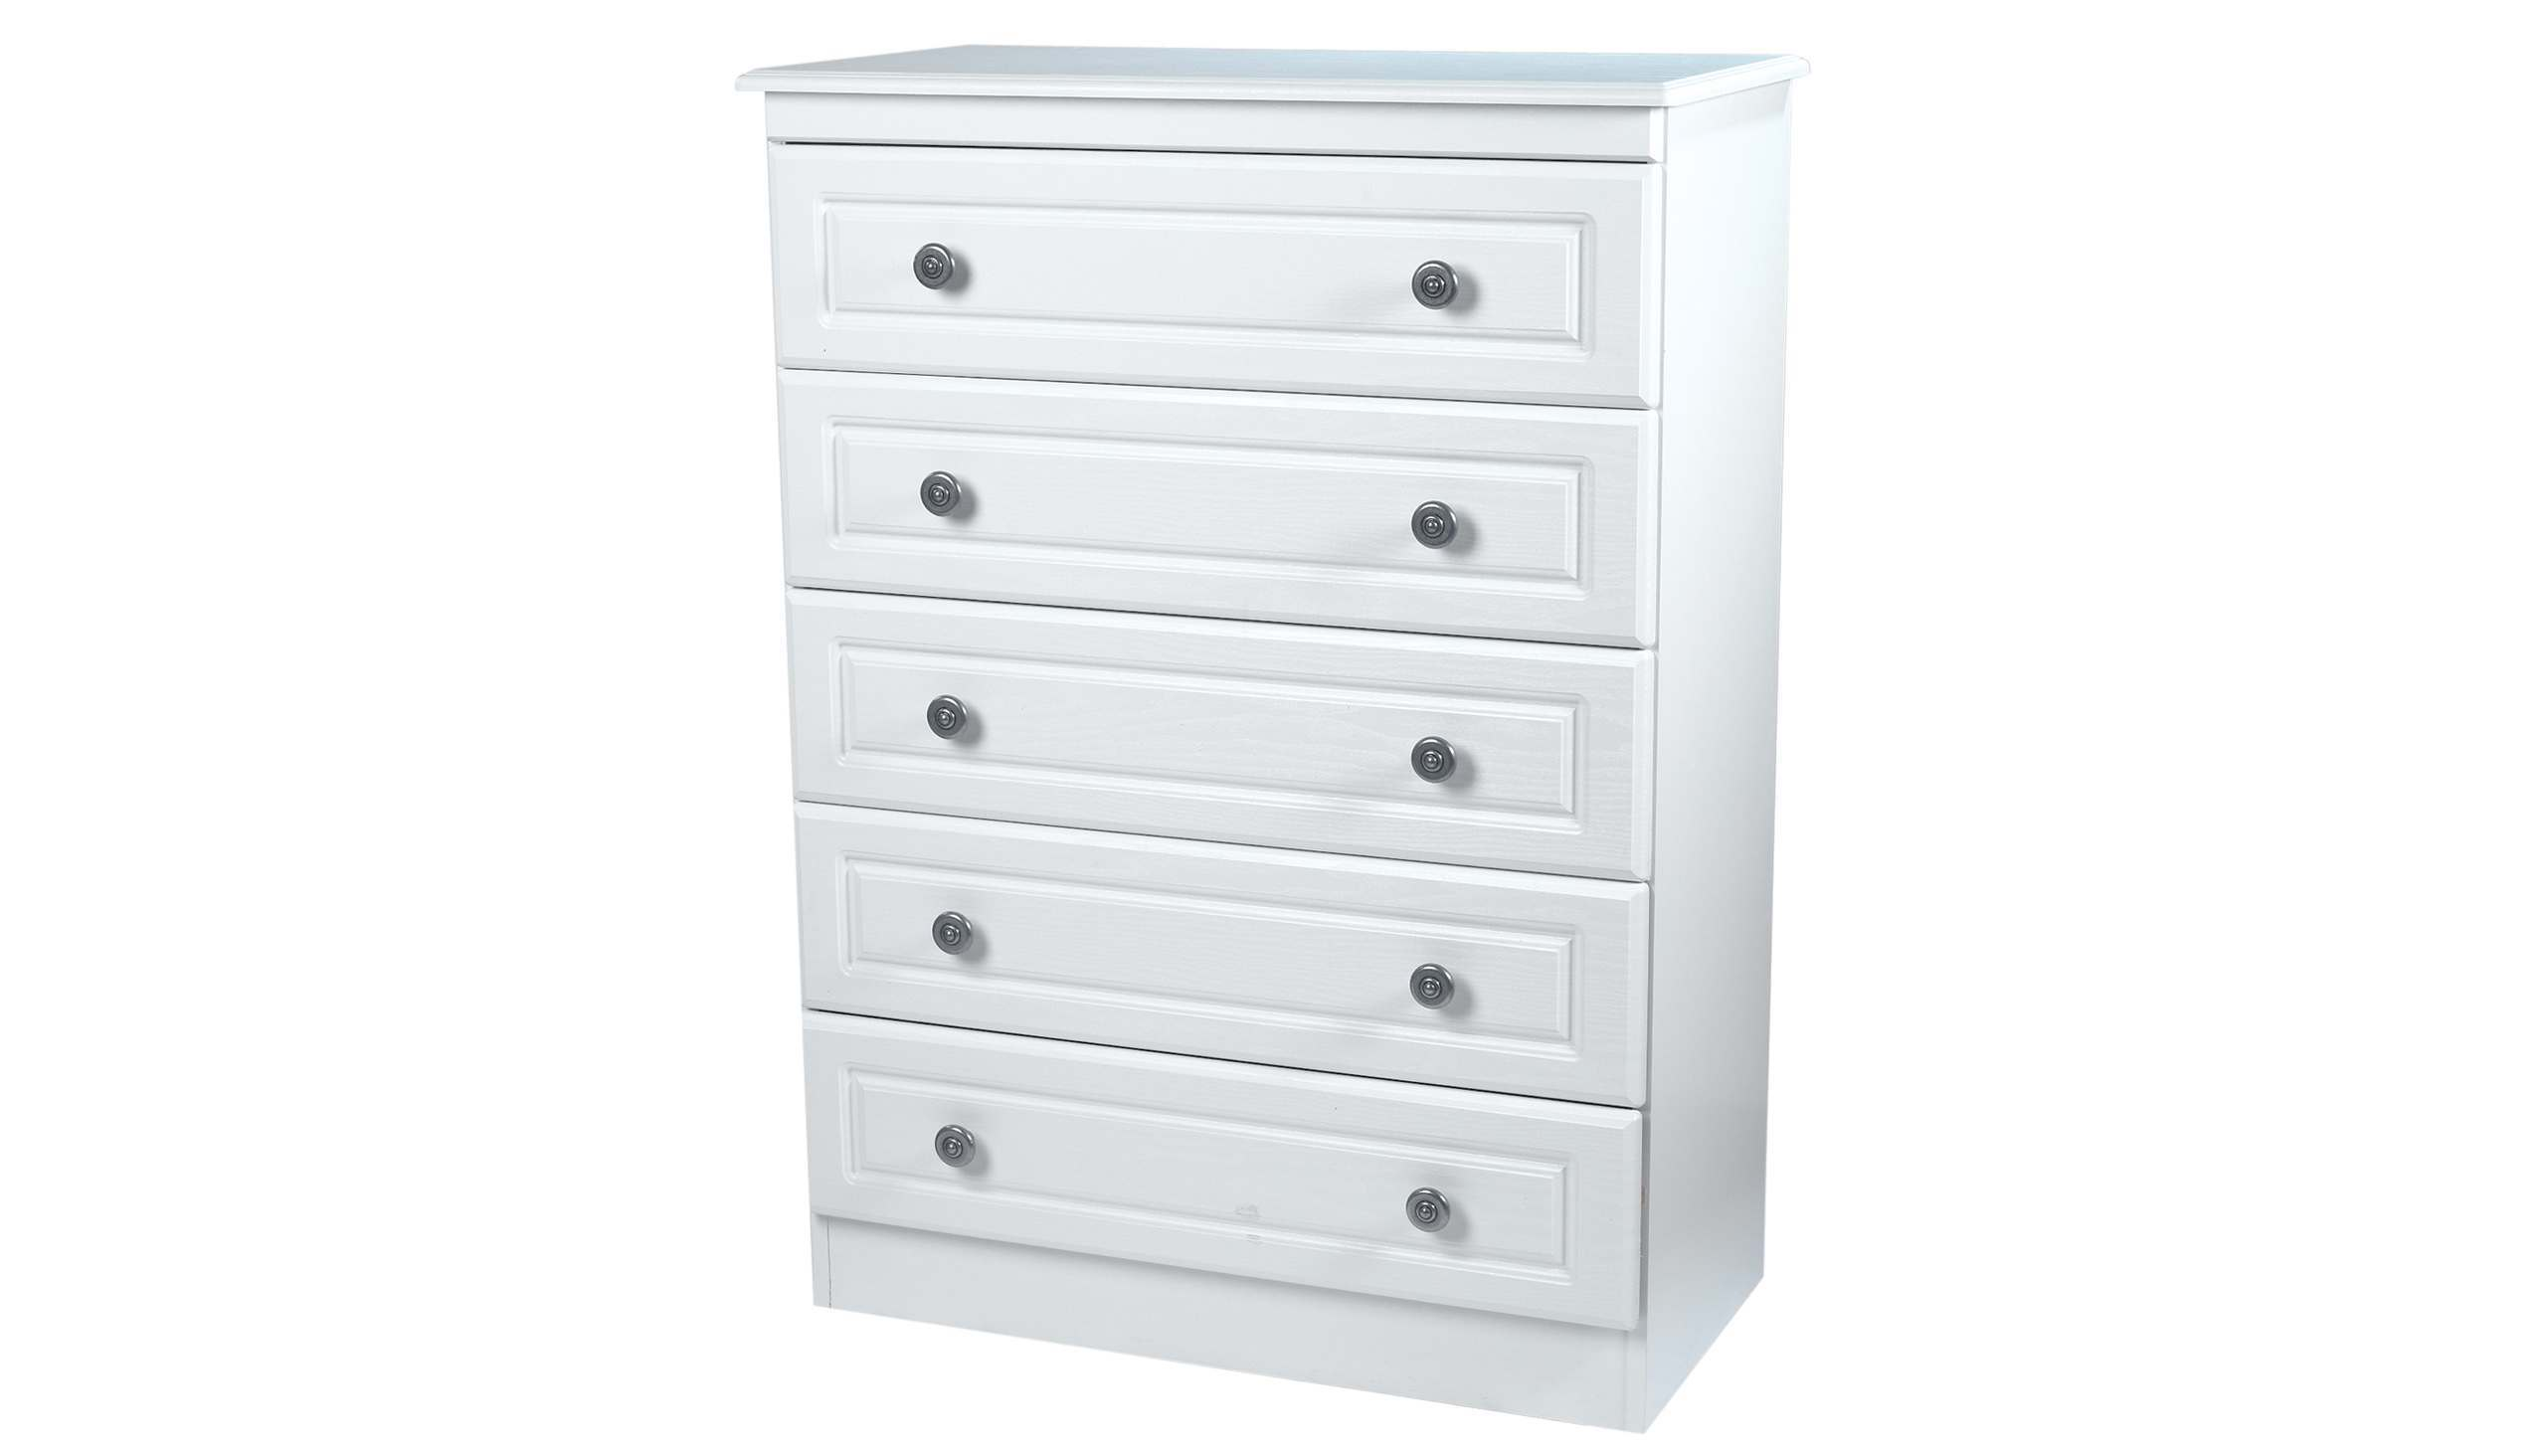 Pembroke 5 drawer chest - AHF Furniture & Carpets